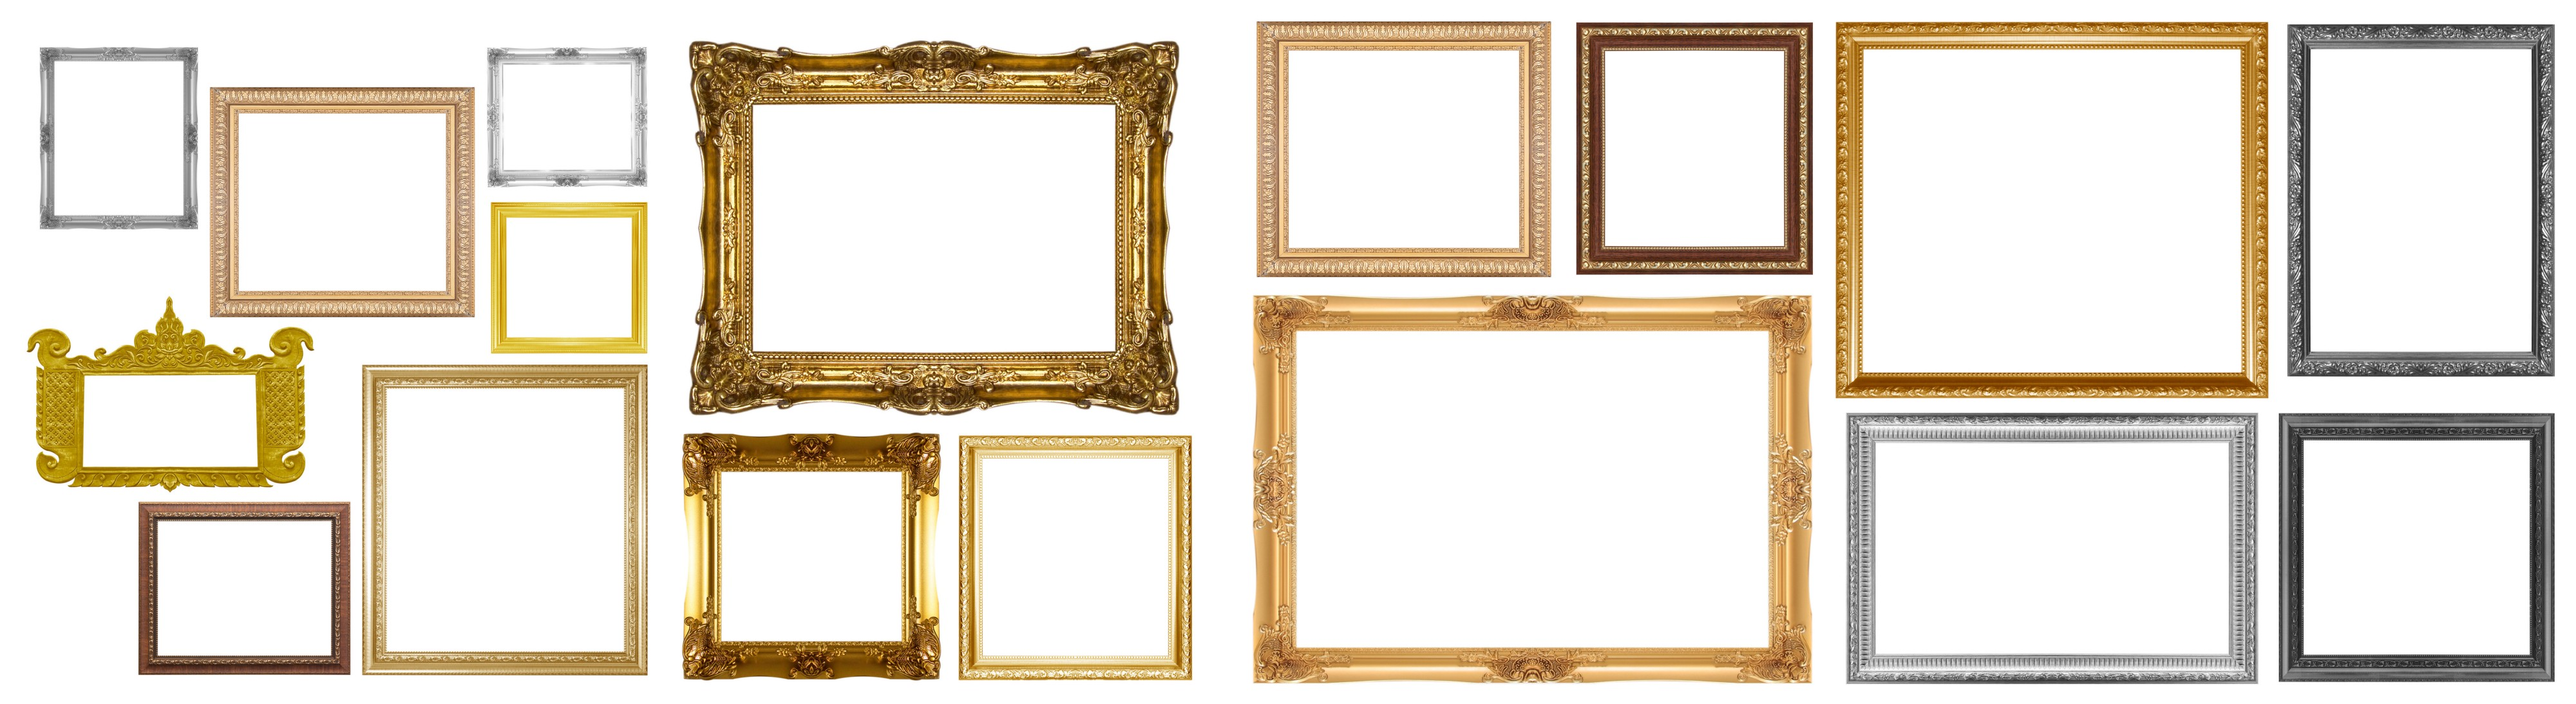 Empty picture frames in various shades of gold, silver, and black